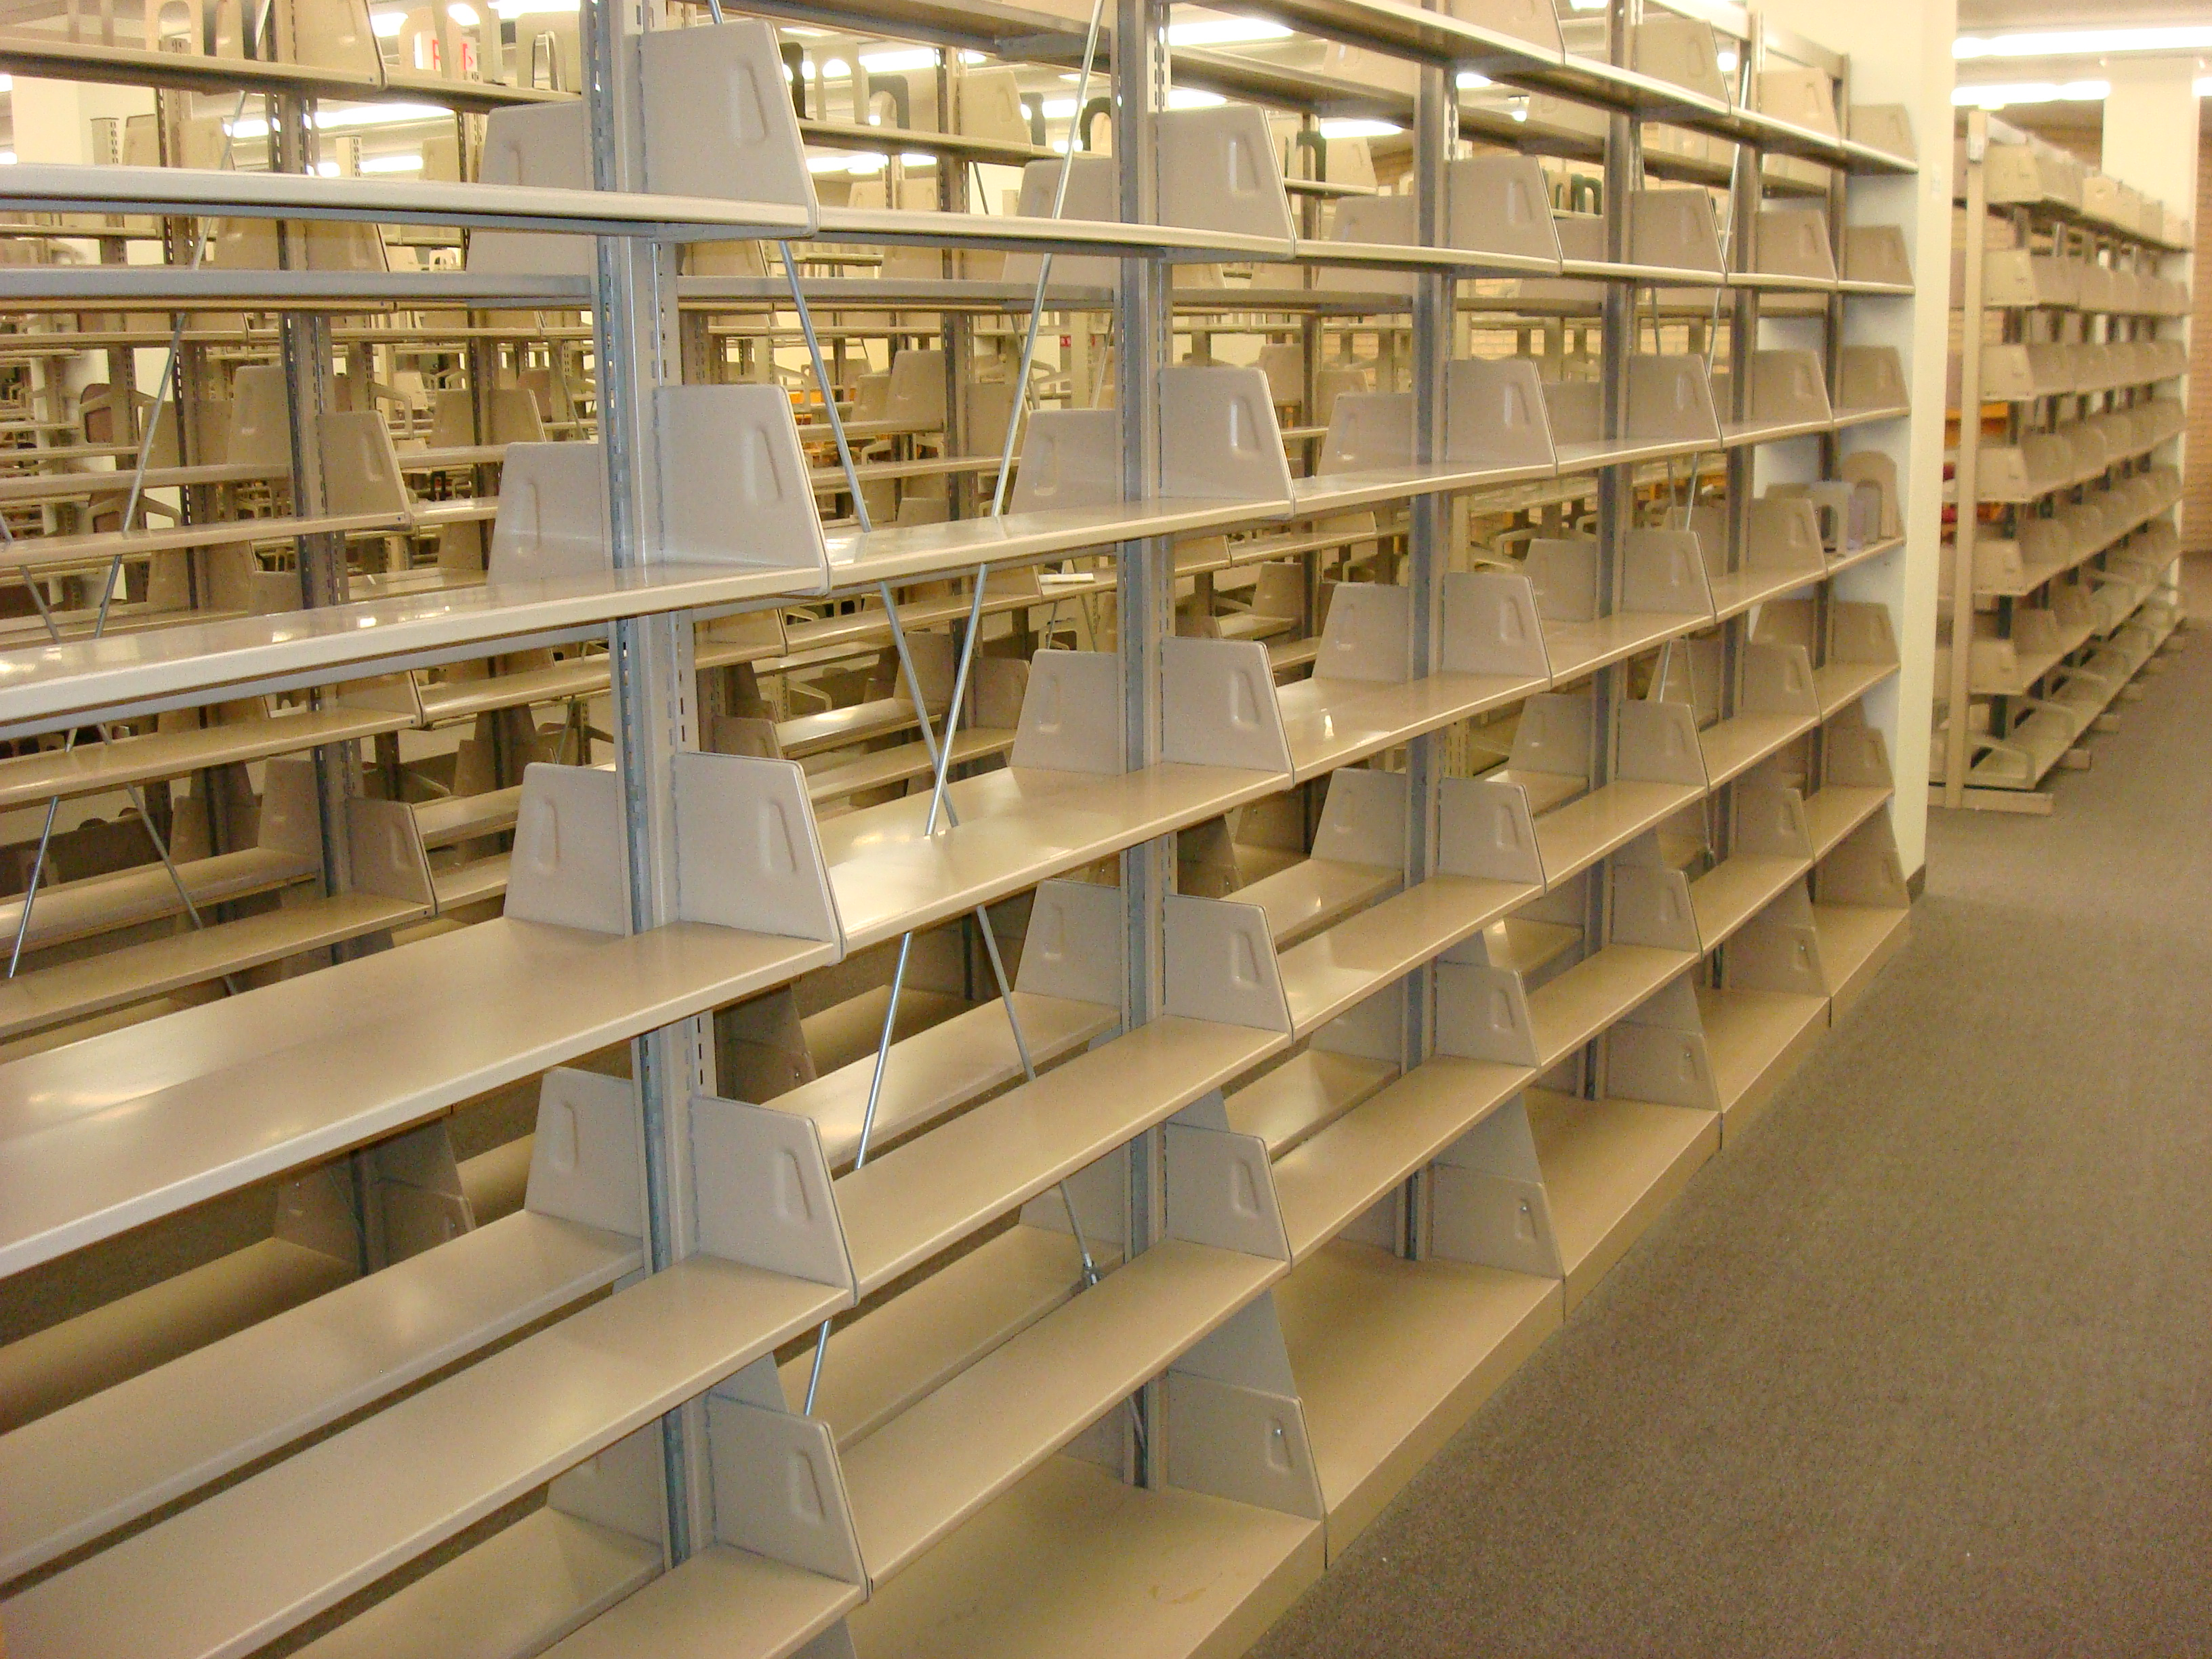 university libraries are questioning the added value of open shelves with books as scientific publications are increasingly available in electronic format - Library Bookshelves